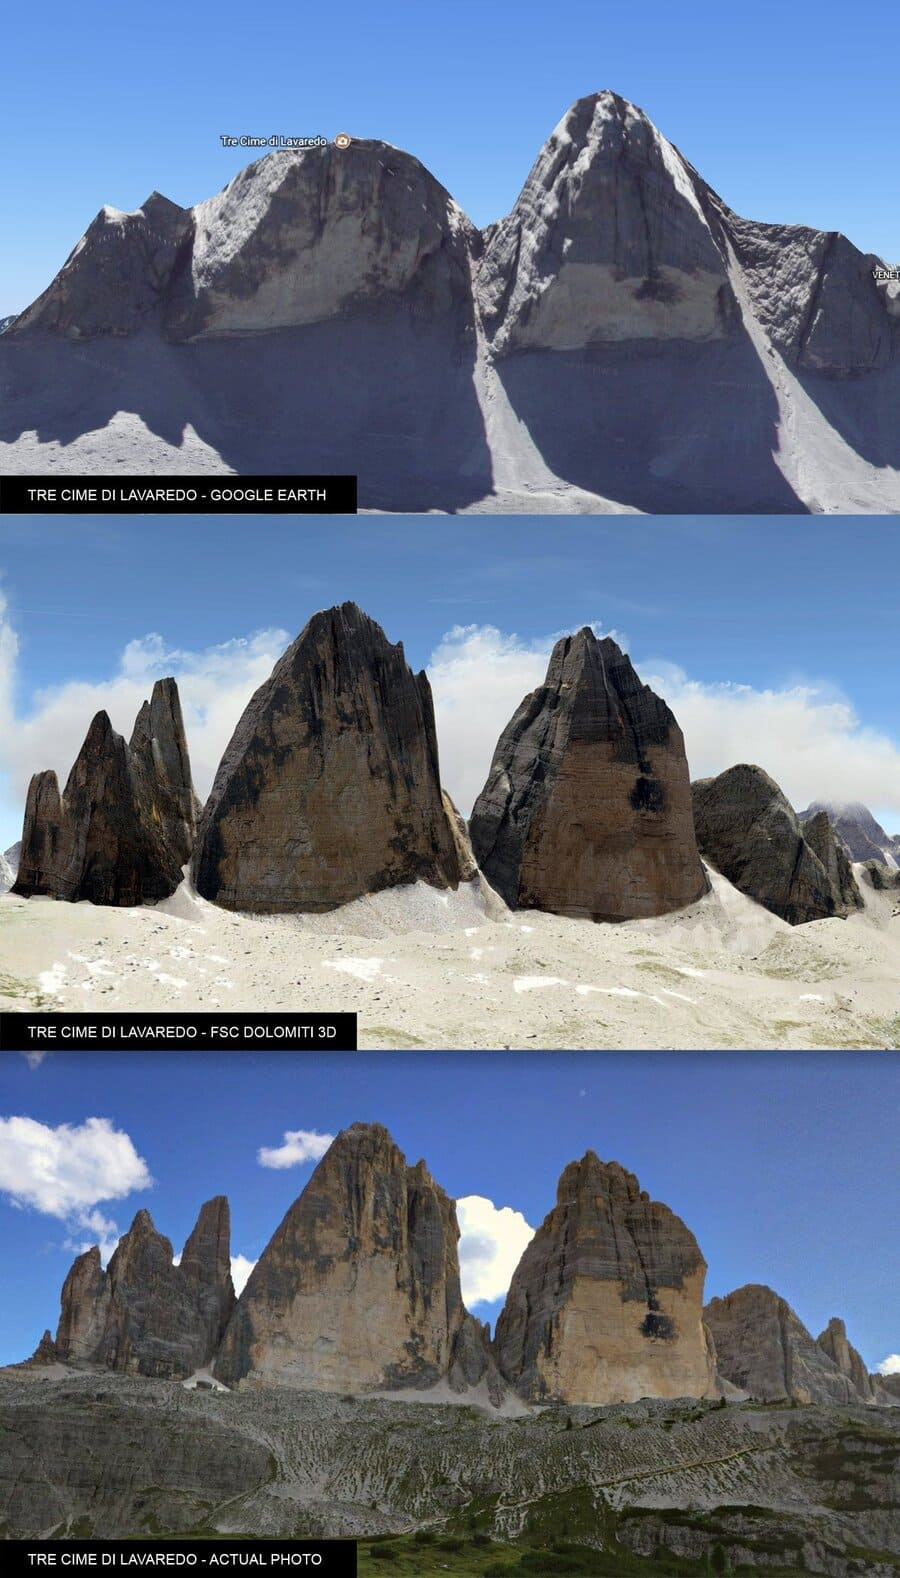 FSC DOLOMITI 3D GOOGLE MAPS PHOTO COMPARISON